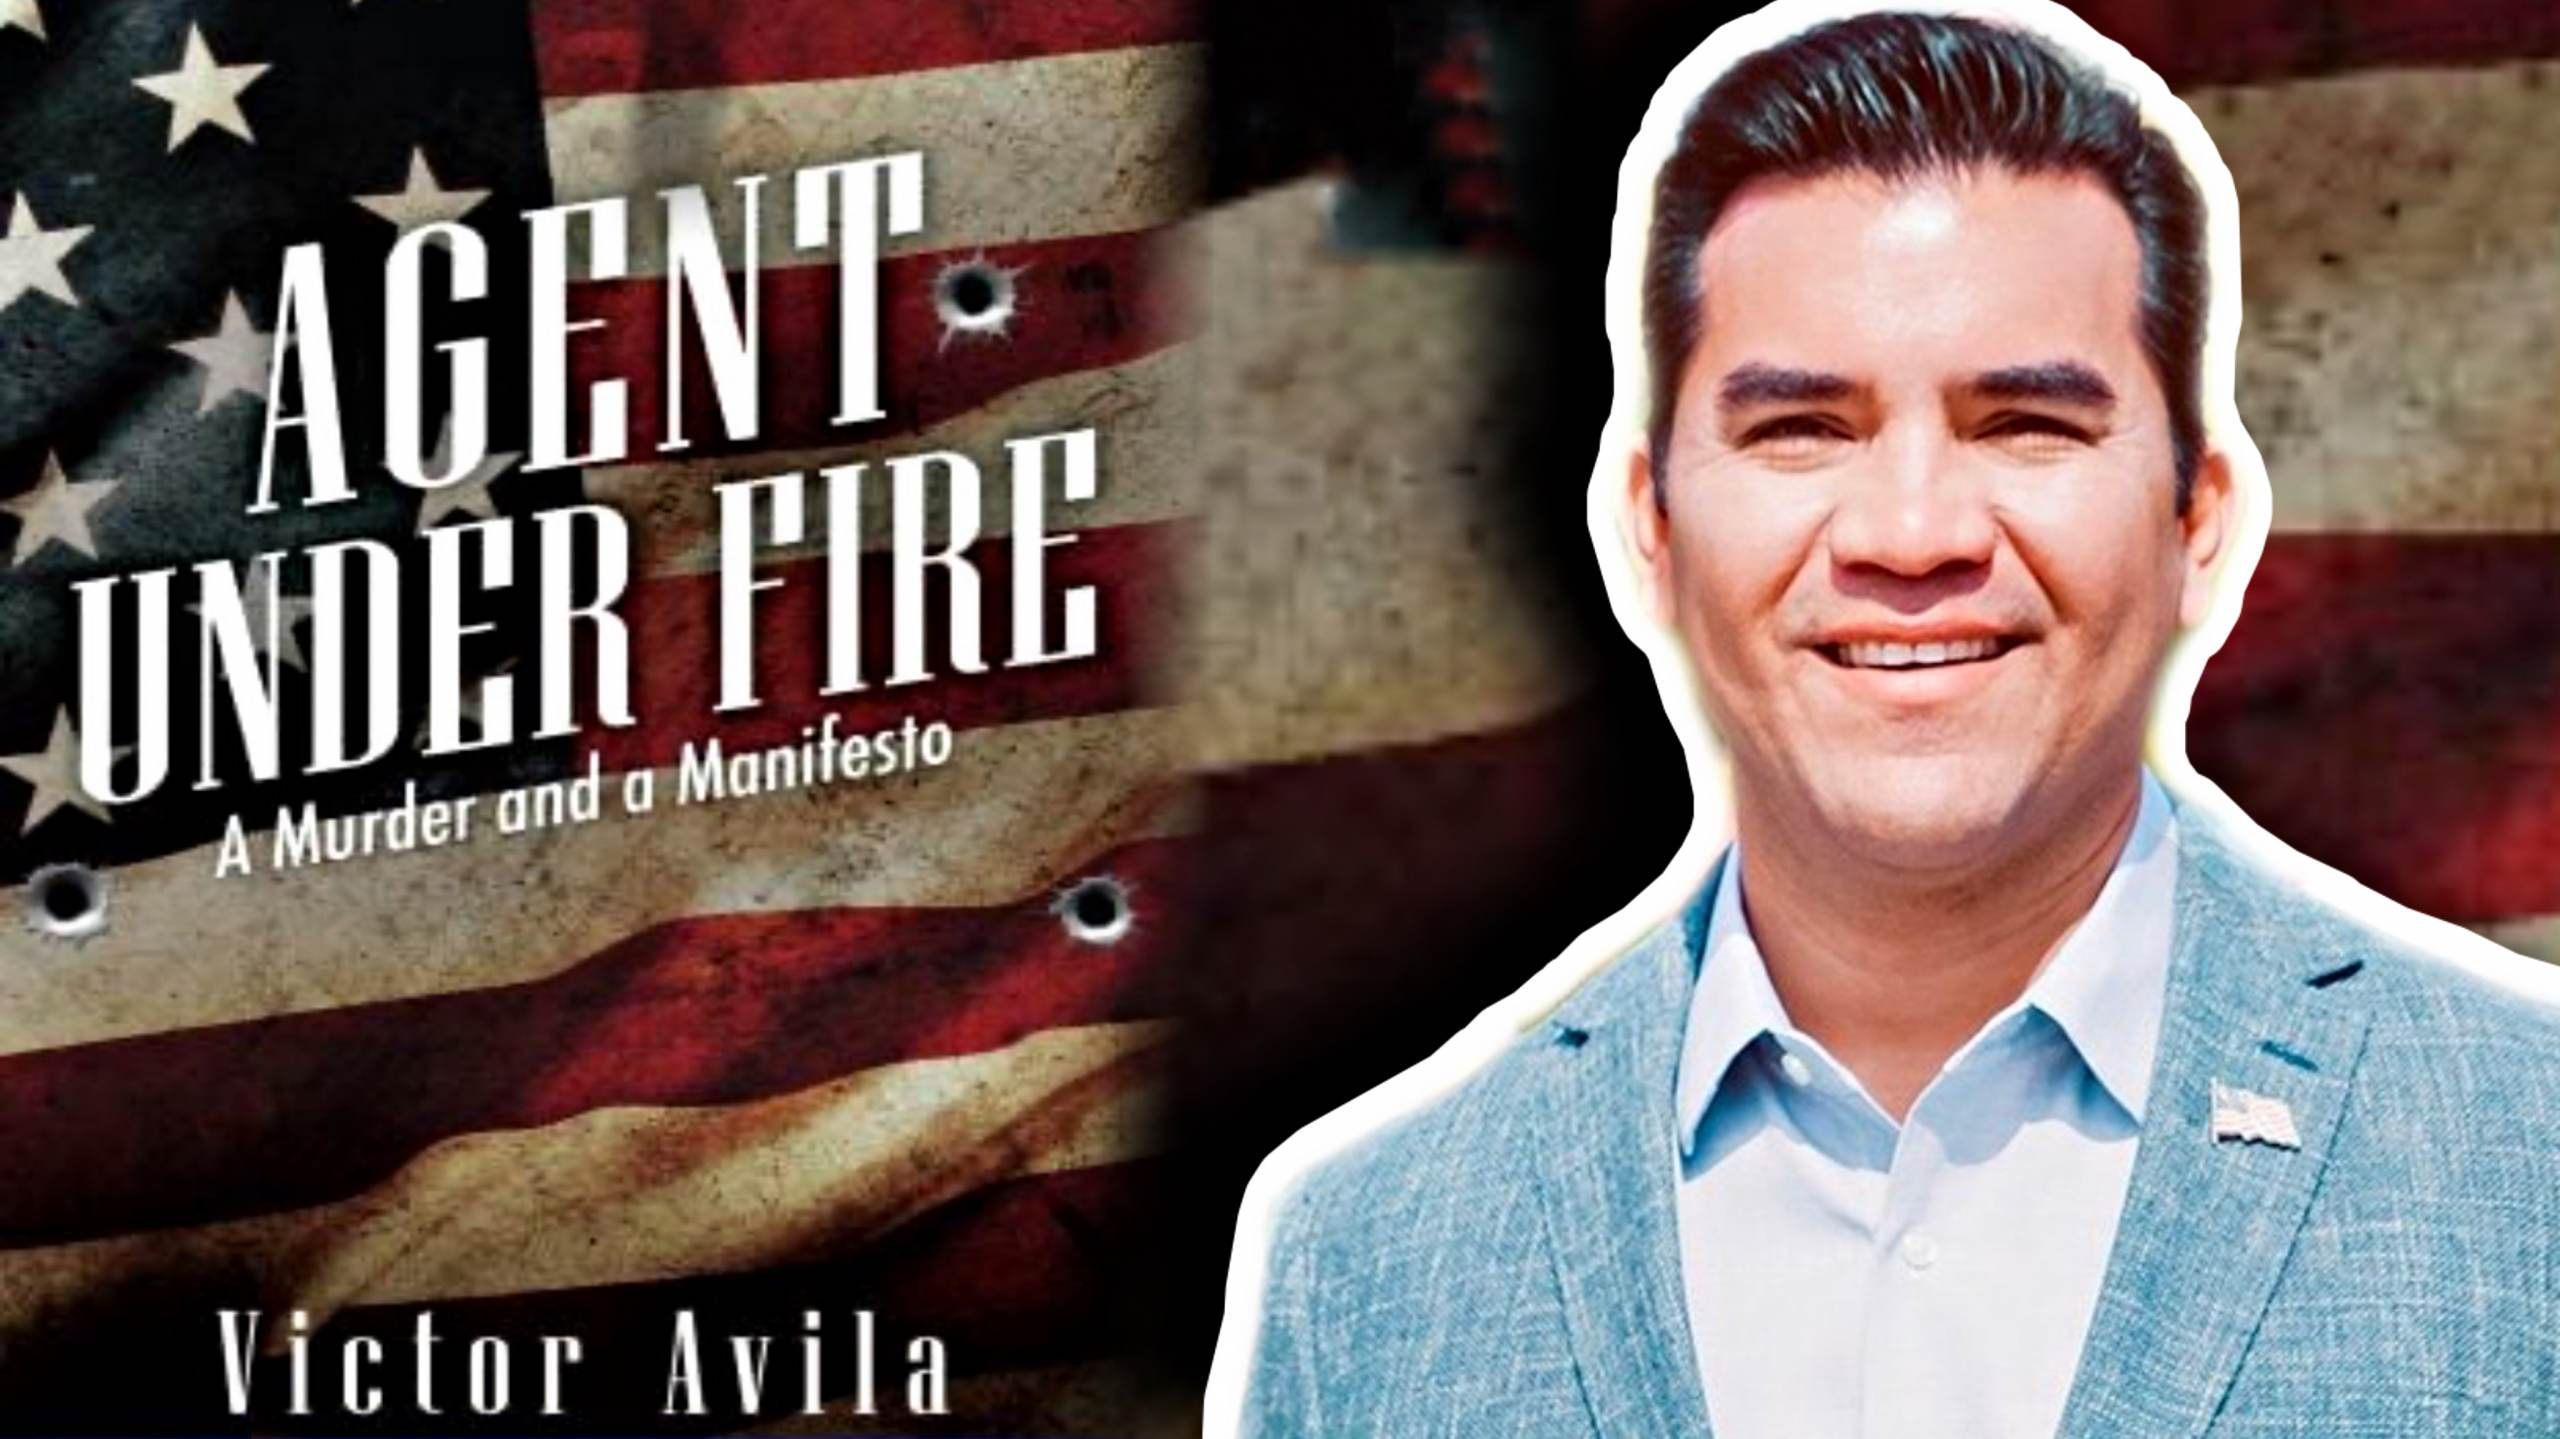 """""""Agent Under Fire"""" – Author and American Hero Victor Avila Speaks Out About the Current Crisis on the Southern Border (VIDEO)"""